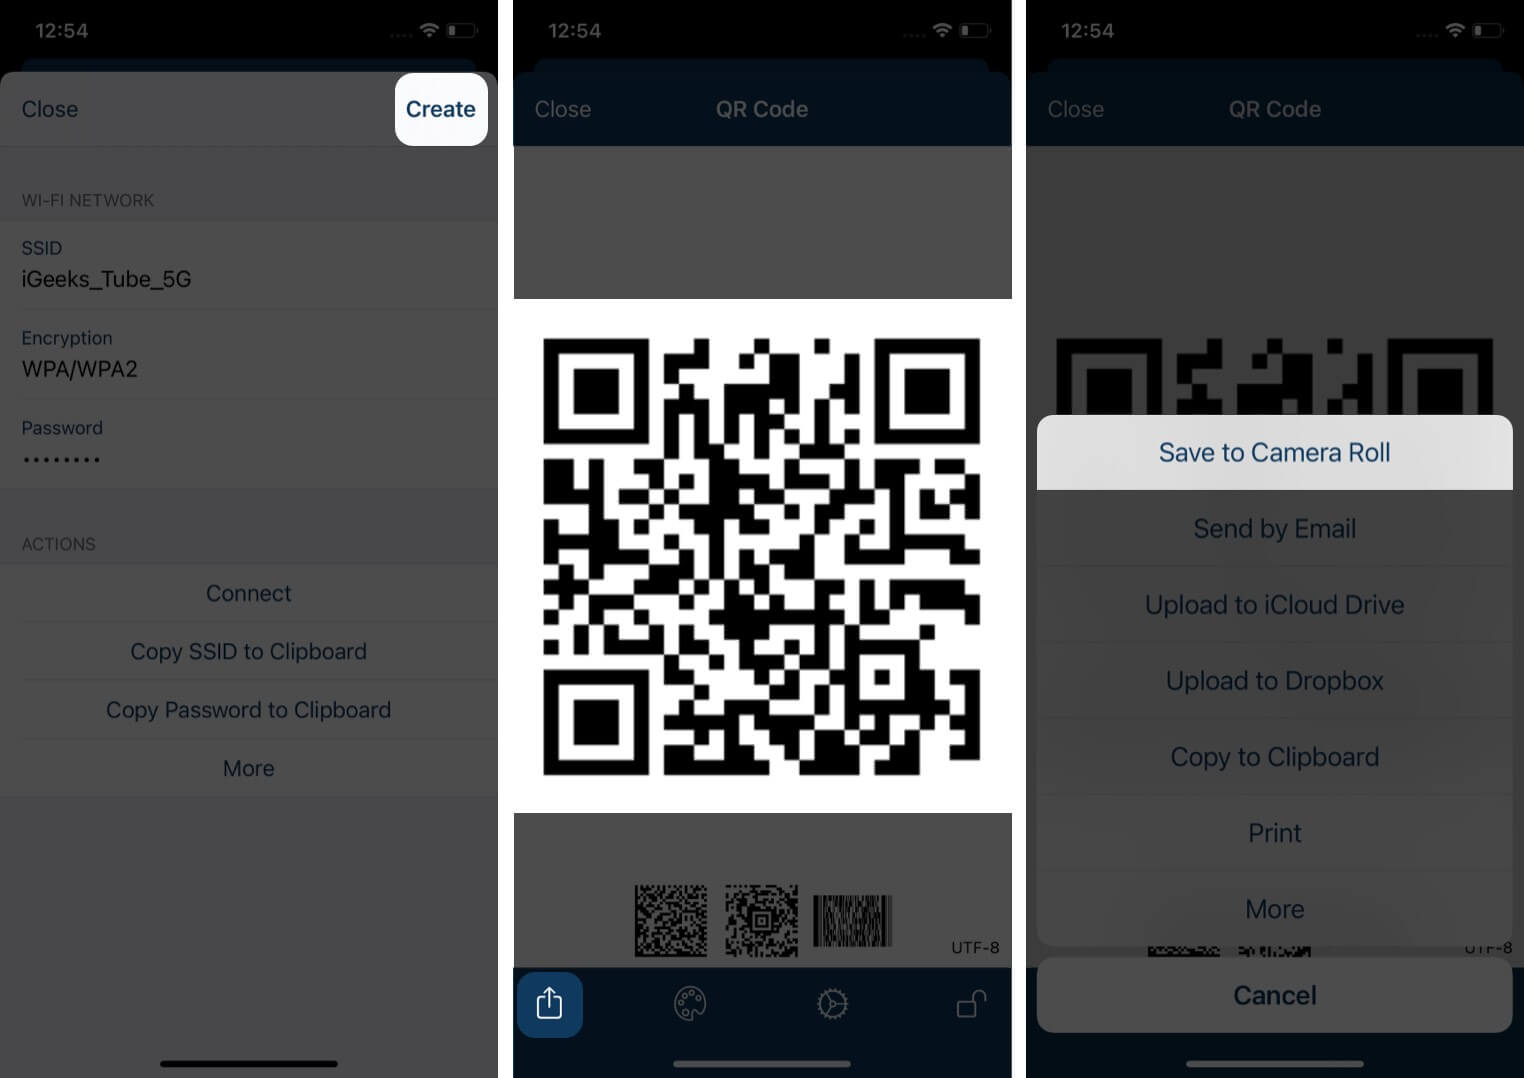 Select Create and your Wi-Fi QR code should be ready to share on Android